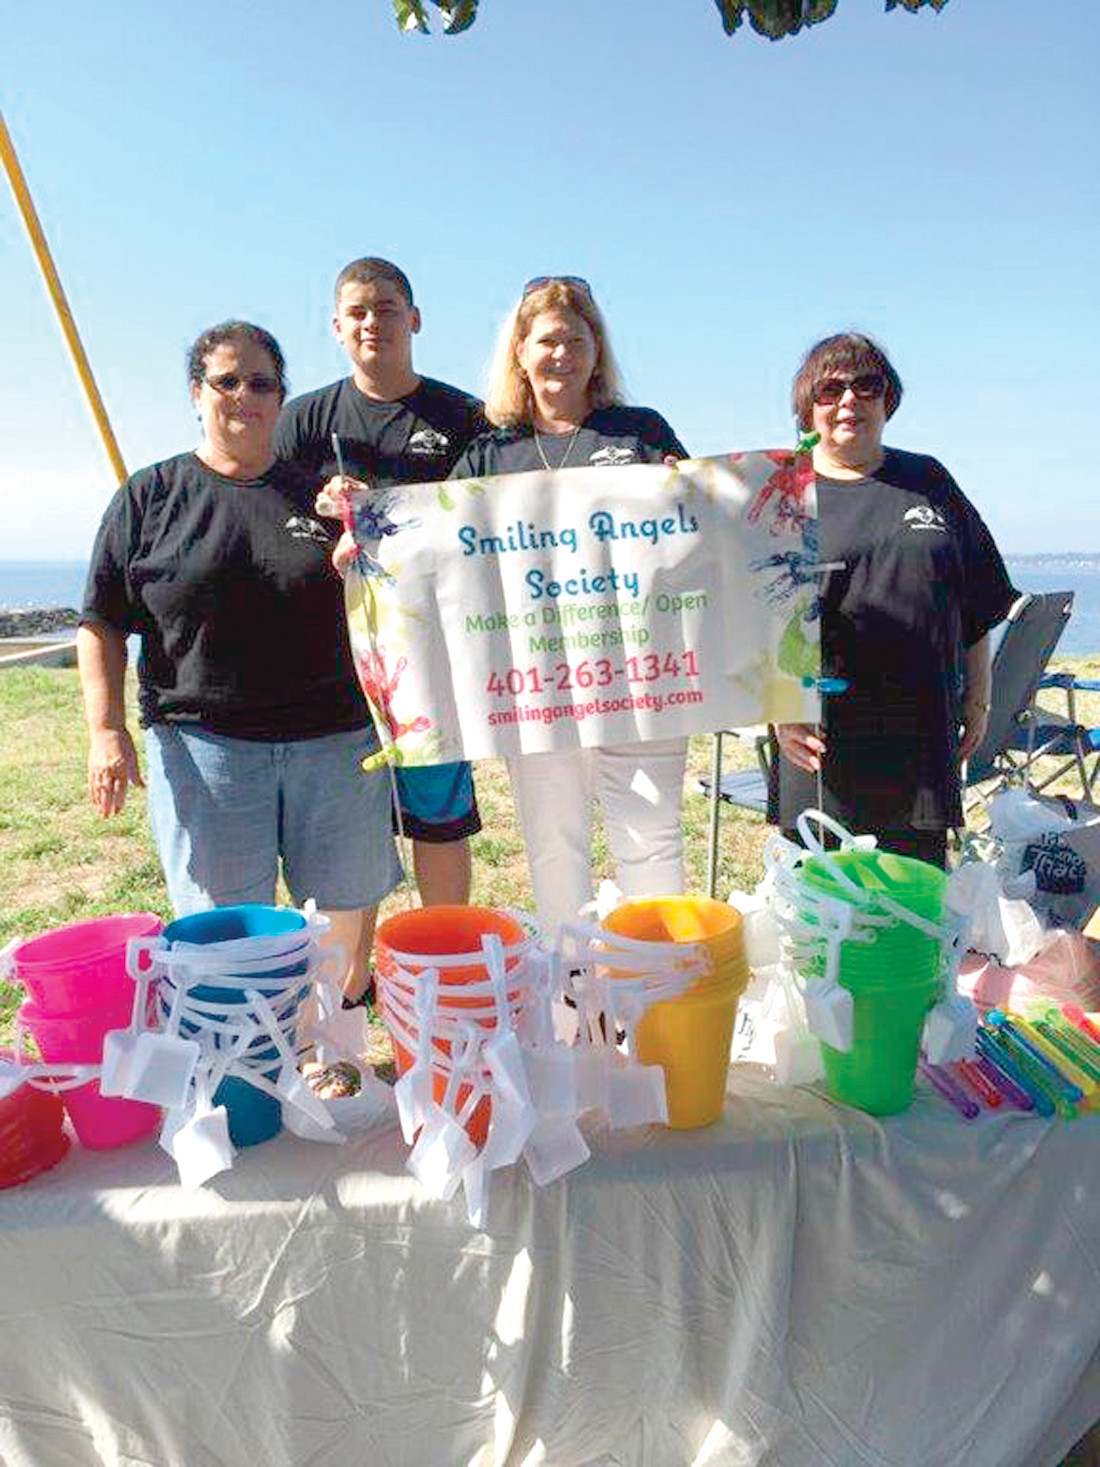 FUN IN THE SUN FOR OTHERS: